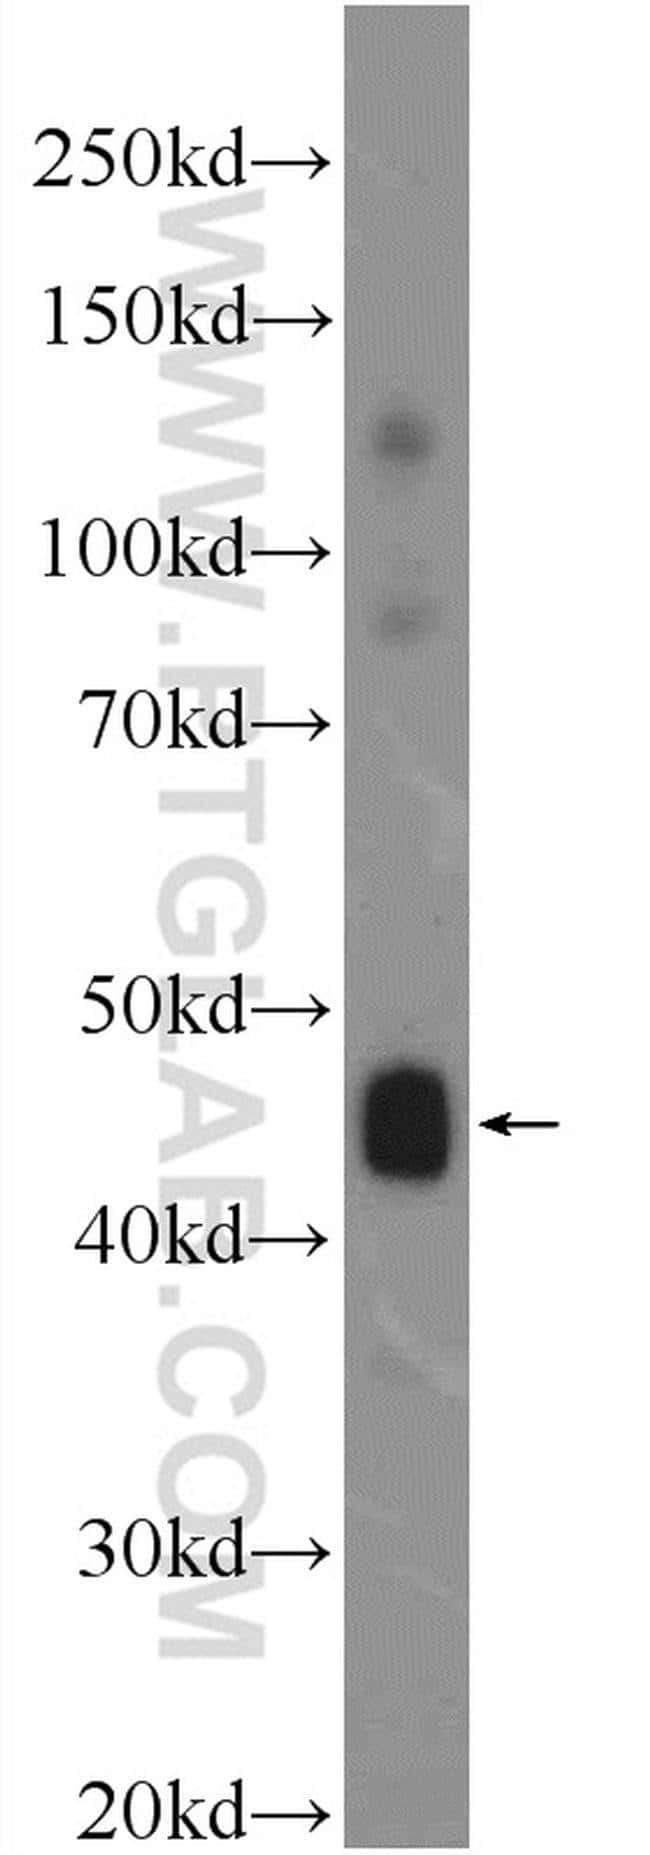 C9orf61 Rabbit anti-Human, Mouse, Polyclonal, Proteintech 150 μL; Unconjugated Ver productos